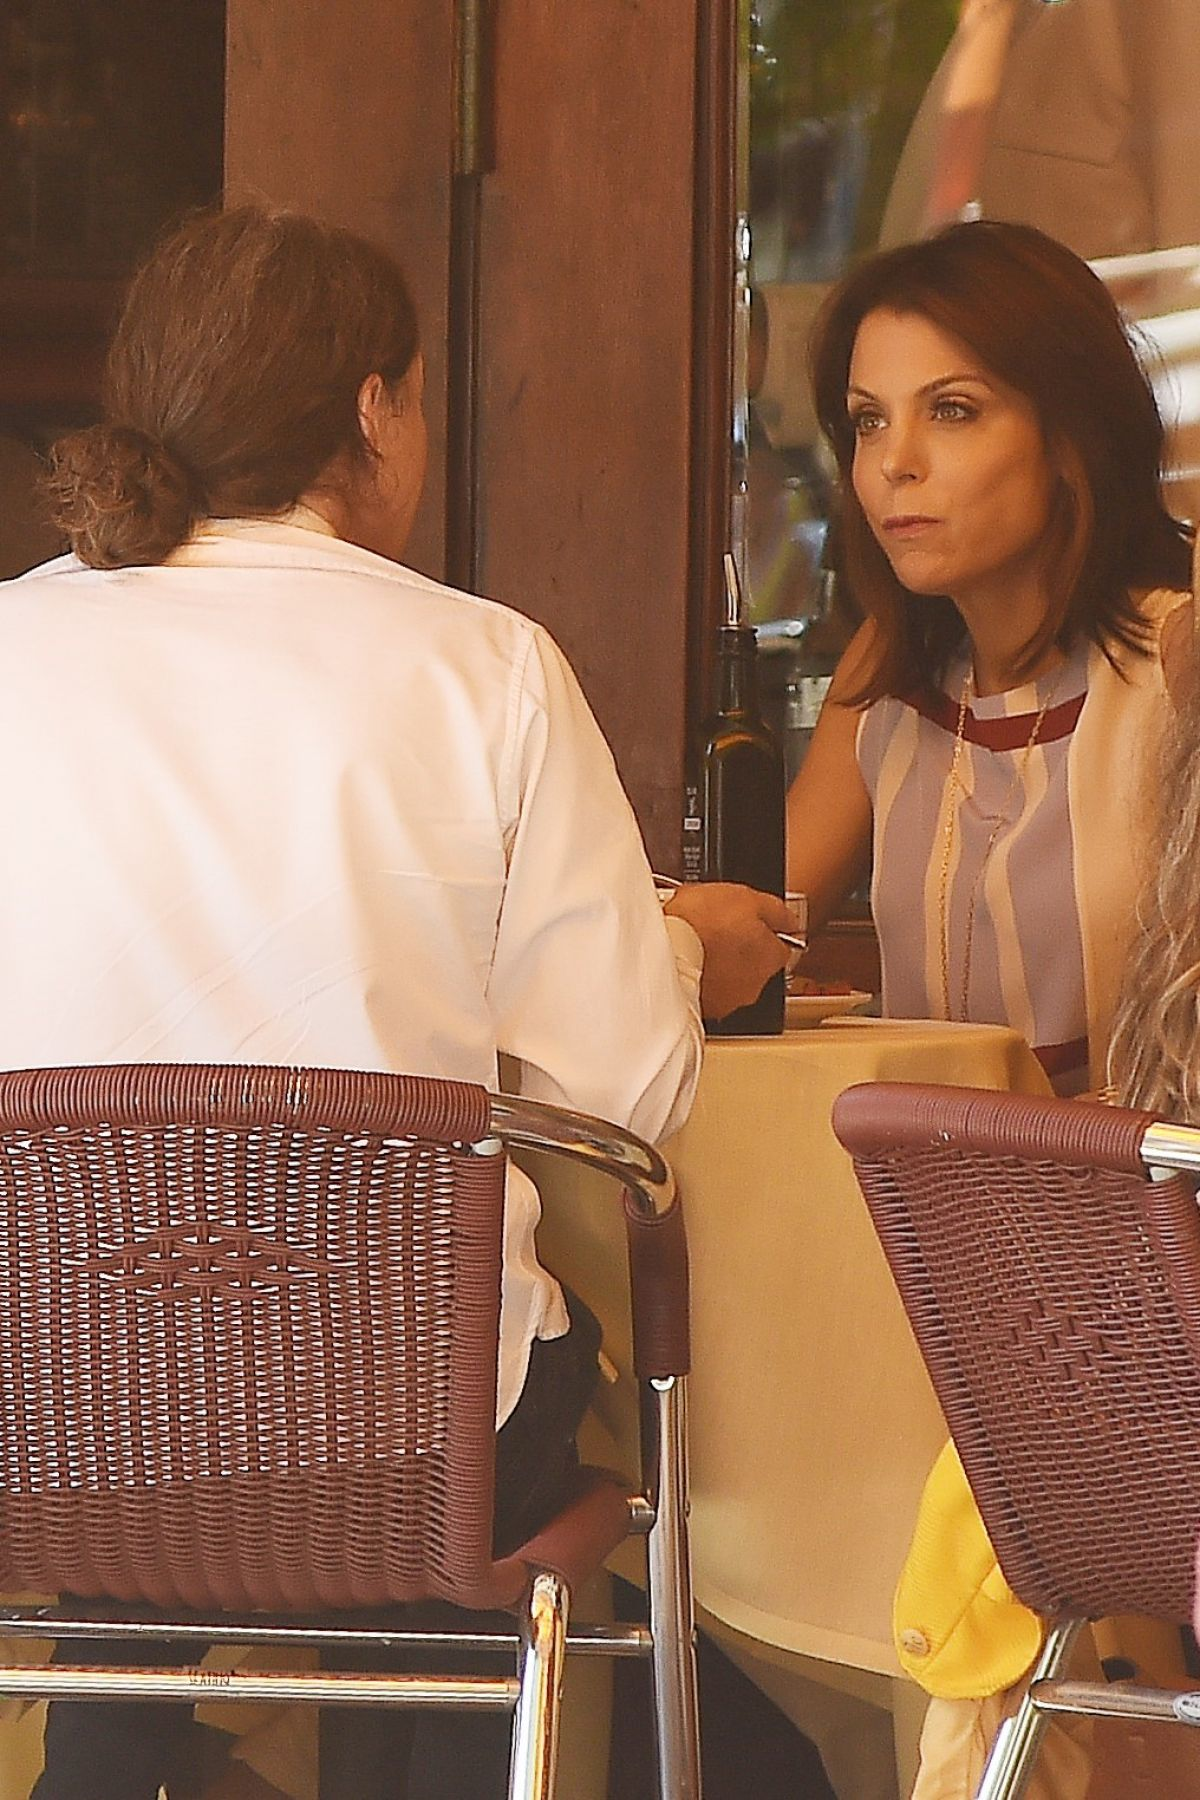 BETHENNY FRANKEL Out for Lunch in New York 05/17/2017   bethenny-frankel-out-for-lunch-in-new-york-05-17-2017_5